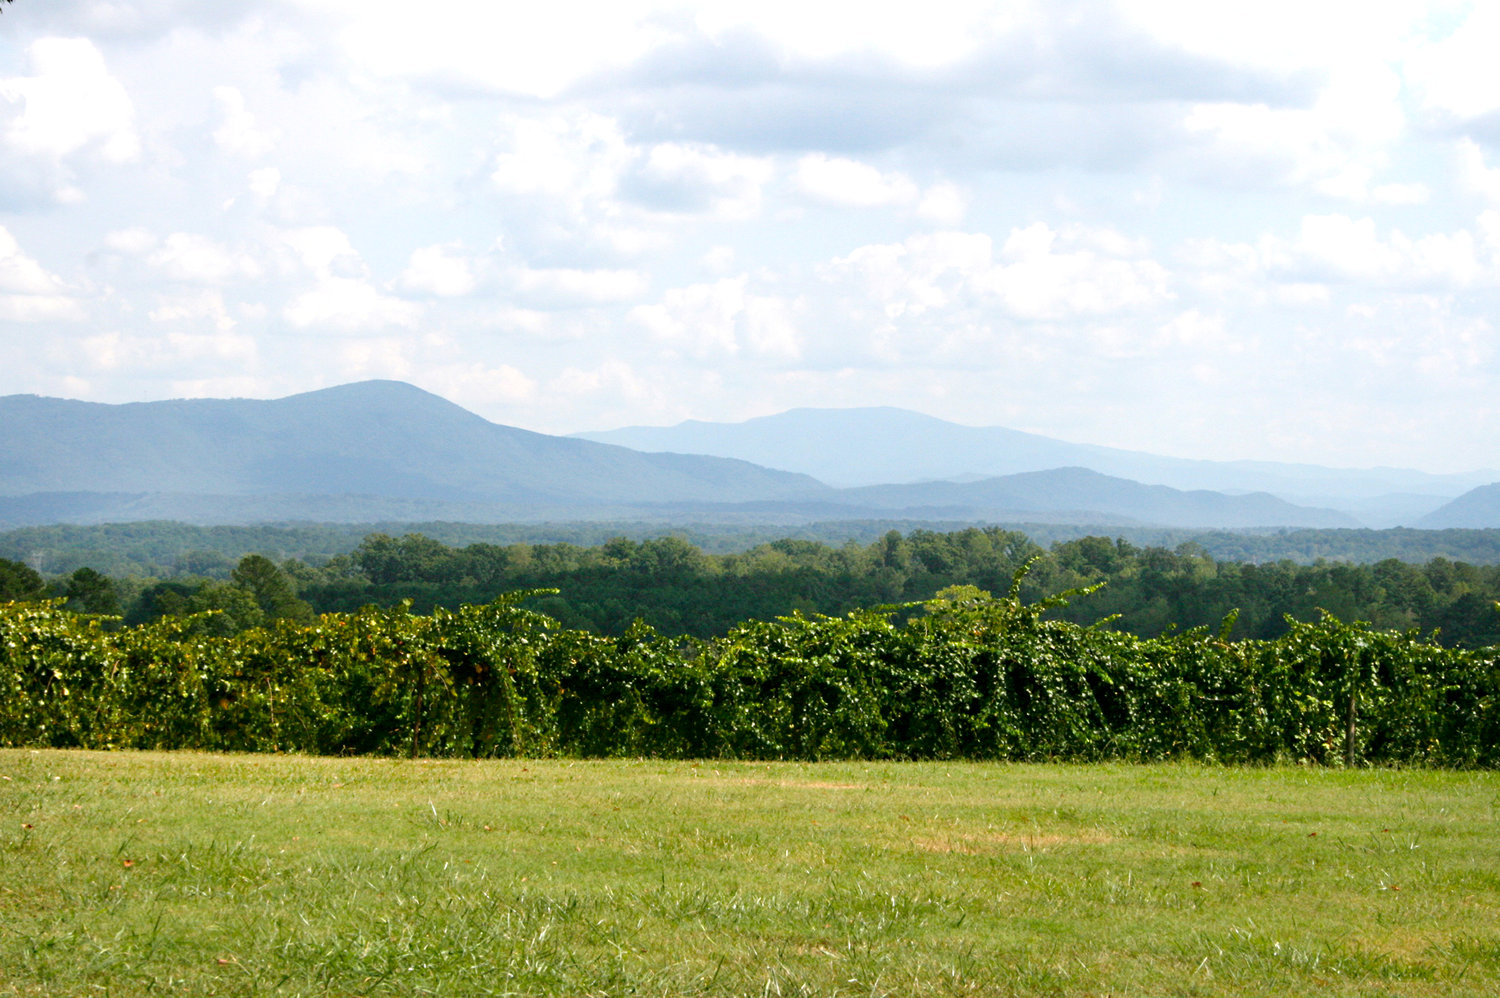 MOUNTAINS TOWERING in the distance give Morris Vineyard's Mountain View label wine its name.